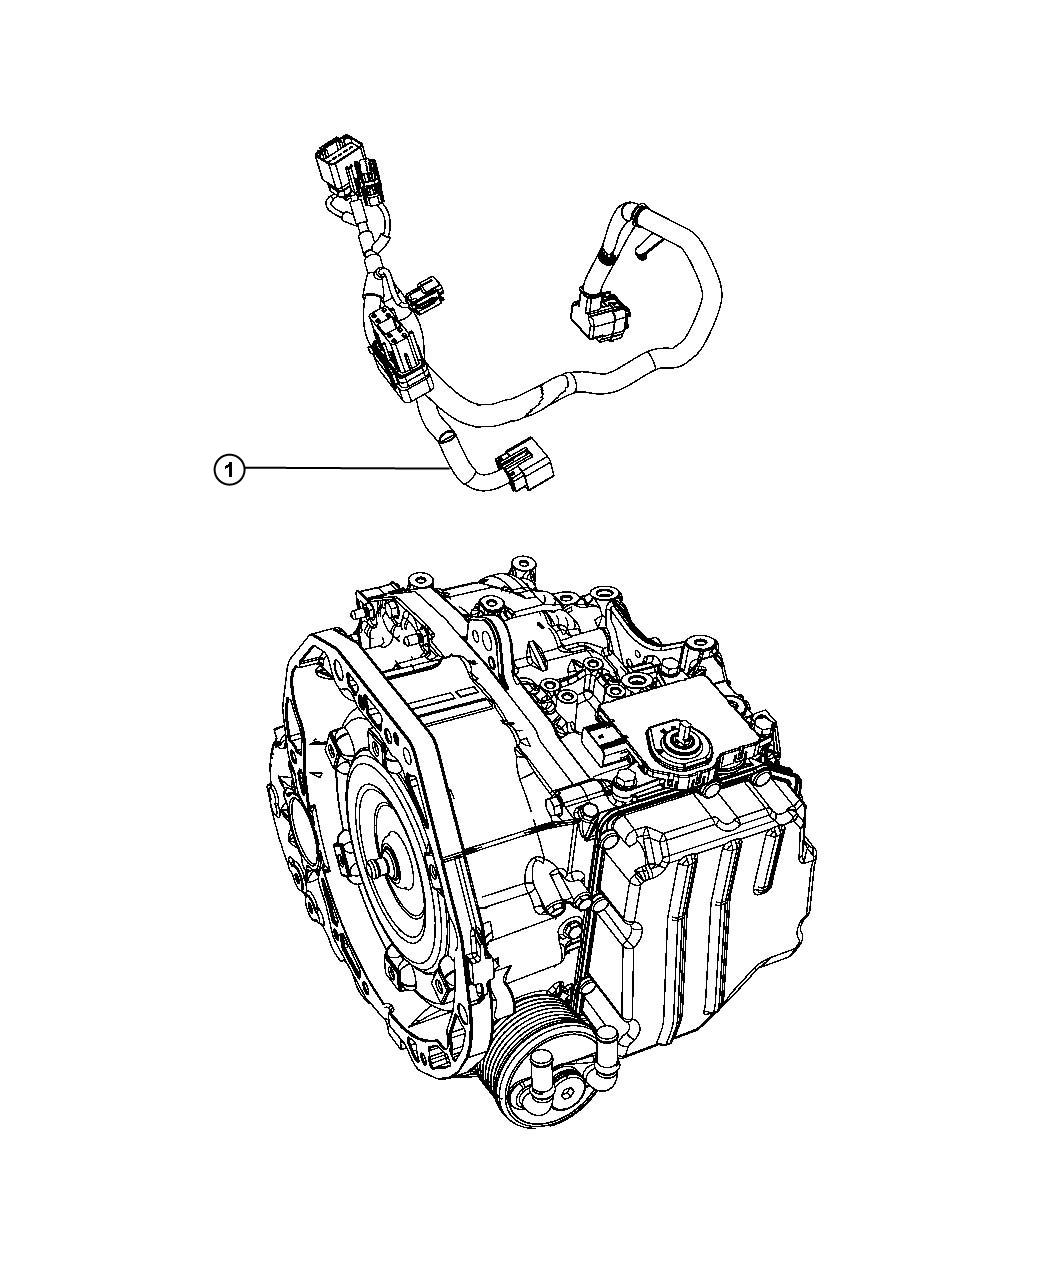 Fiat 500t Wiring Transmission Export 160 Horsepower